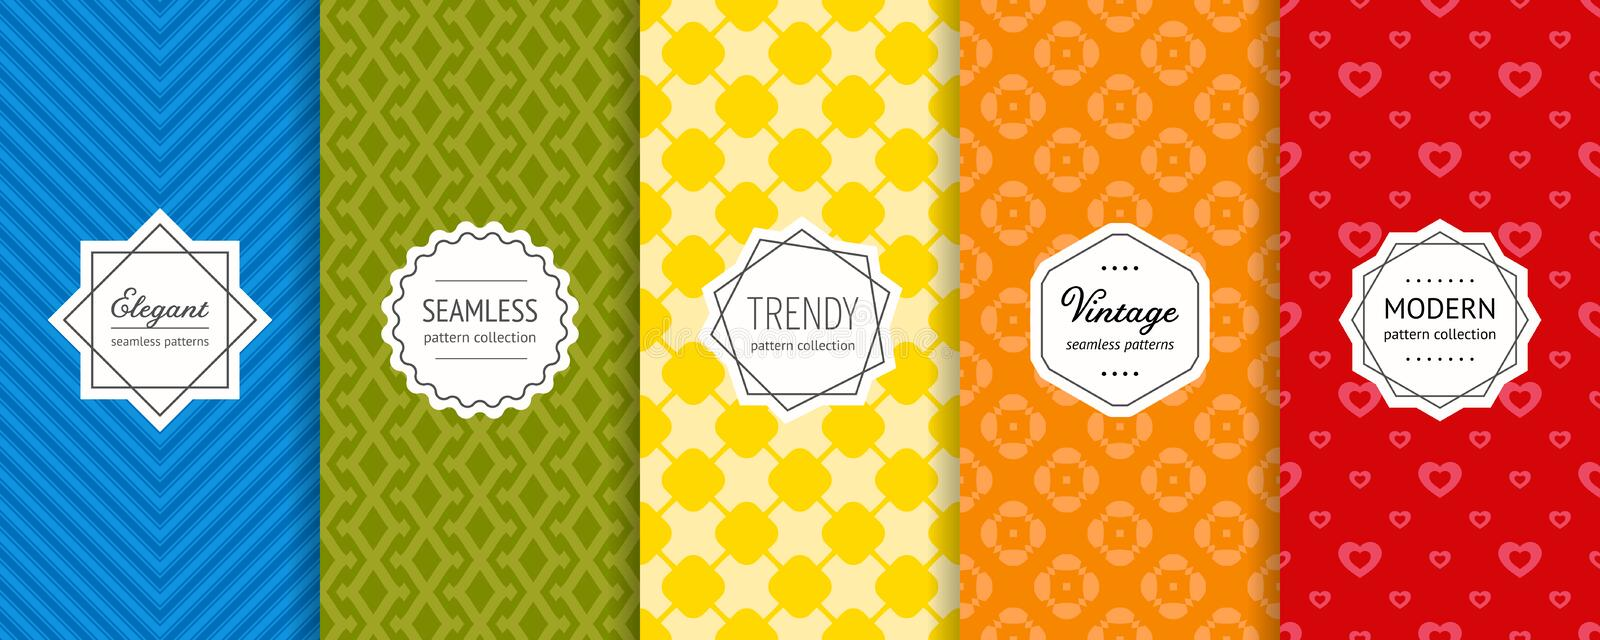 Vector geometric seamless patterns set. Colorful background with stylish labels stock illustration